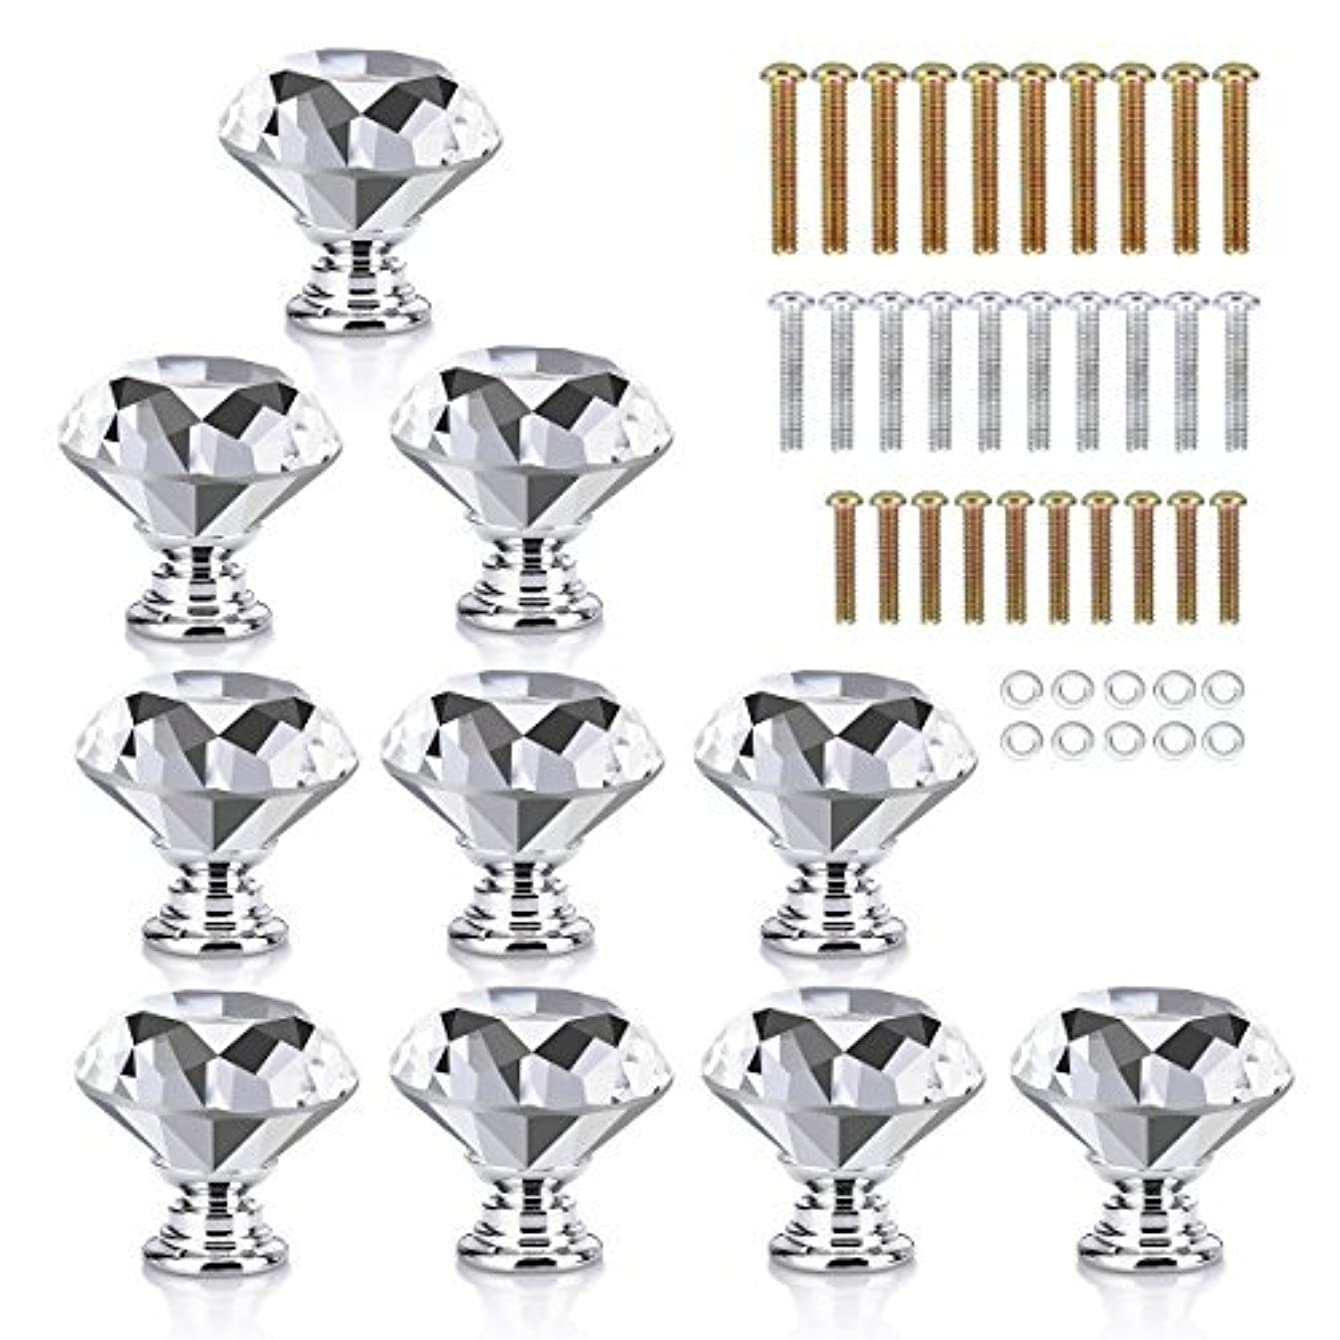 HOMEIDEAS 10PCS 30MM Crystal Knobs Glass Cabinet Drawer Knobs Diamond Shape Cabinet Pulls Handles with 3 Different Size Screws for Home, Bathroom Cabinet, Cupboard Drawer and Dresser (Clear)